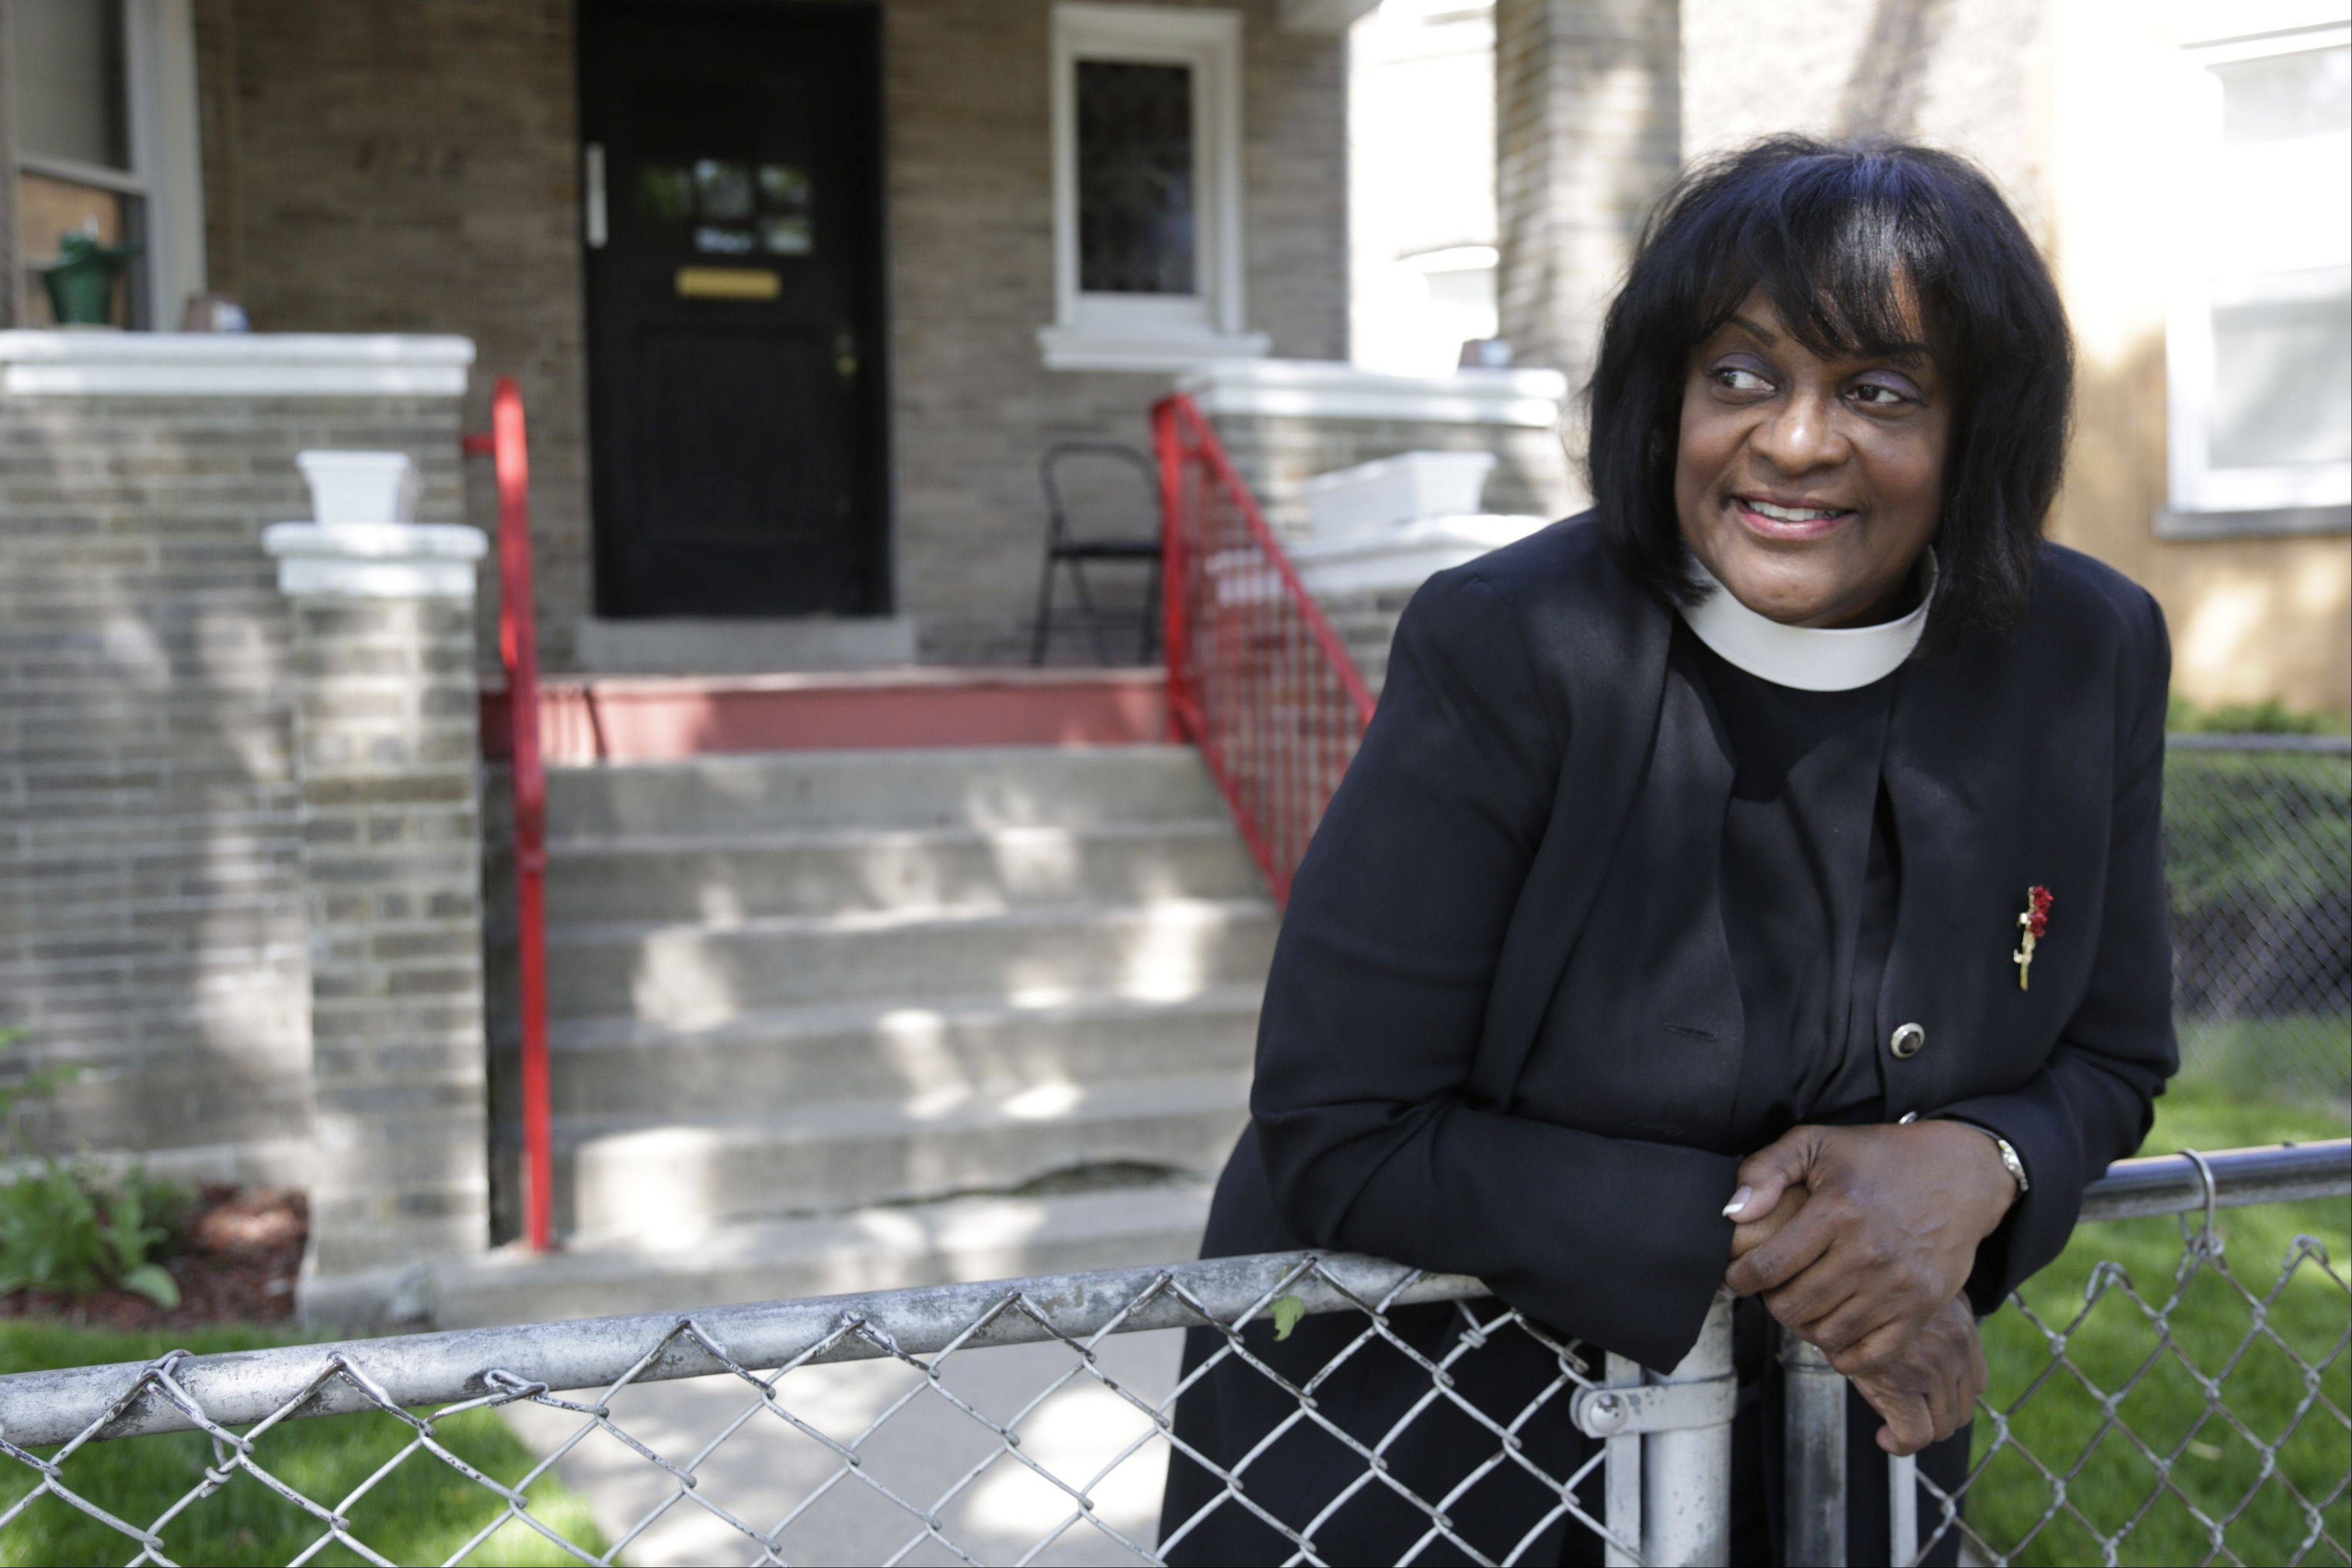 The Rev. Debra Davis signed up for a Cook County program, called CountyCare, when she left her job to deal with health problems and lost her health insurance. If Illinois lawmakers fail to pass the expansion of Medicaid under the nation's health care law, Cook County's program will be in jeopardy.